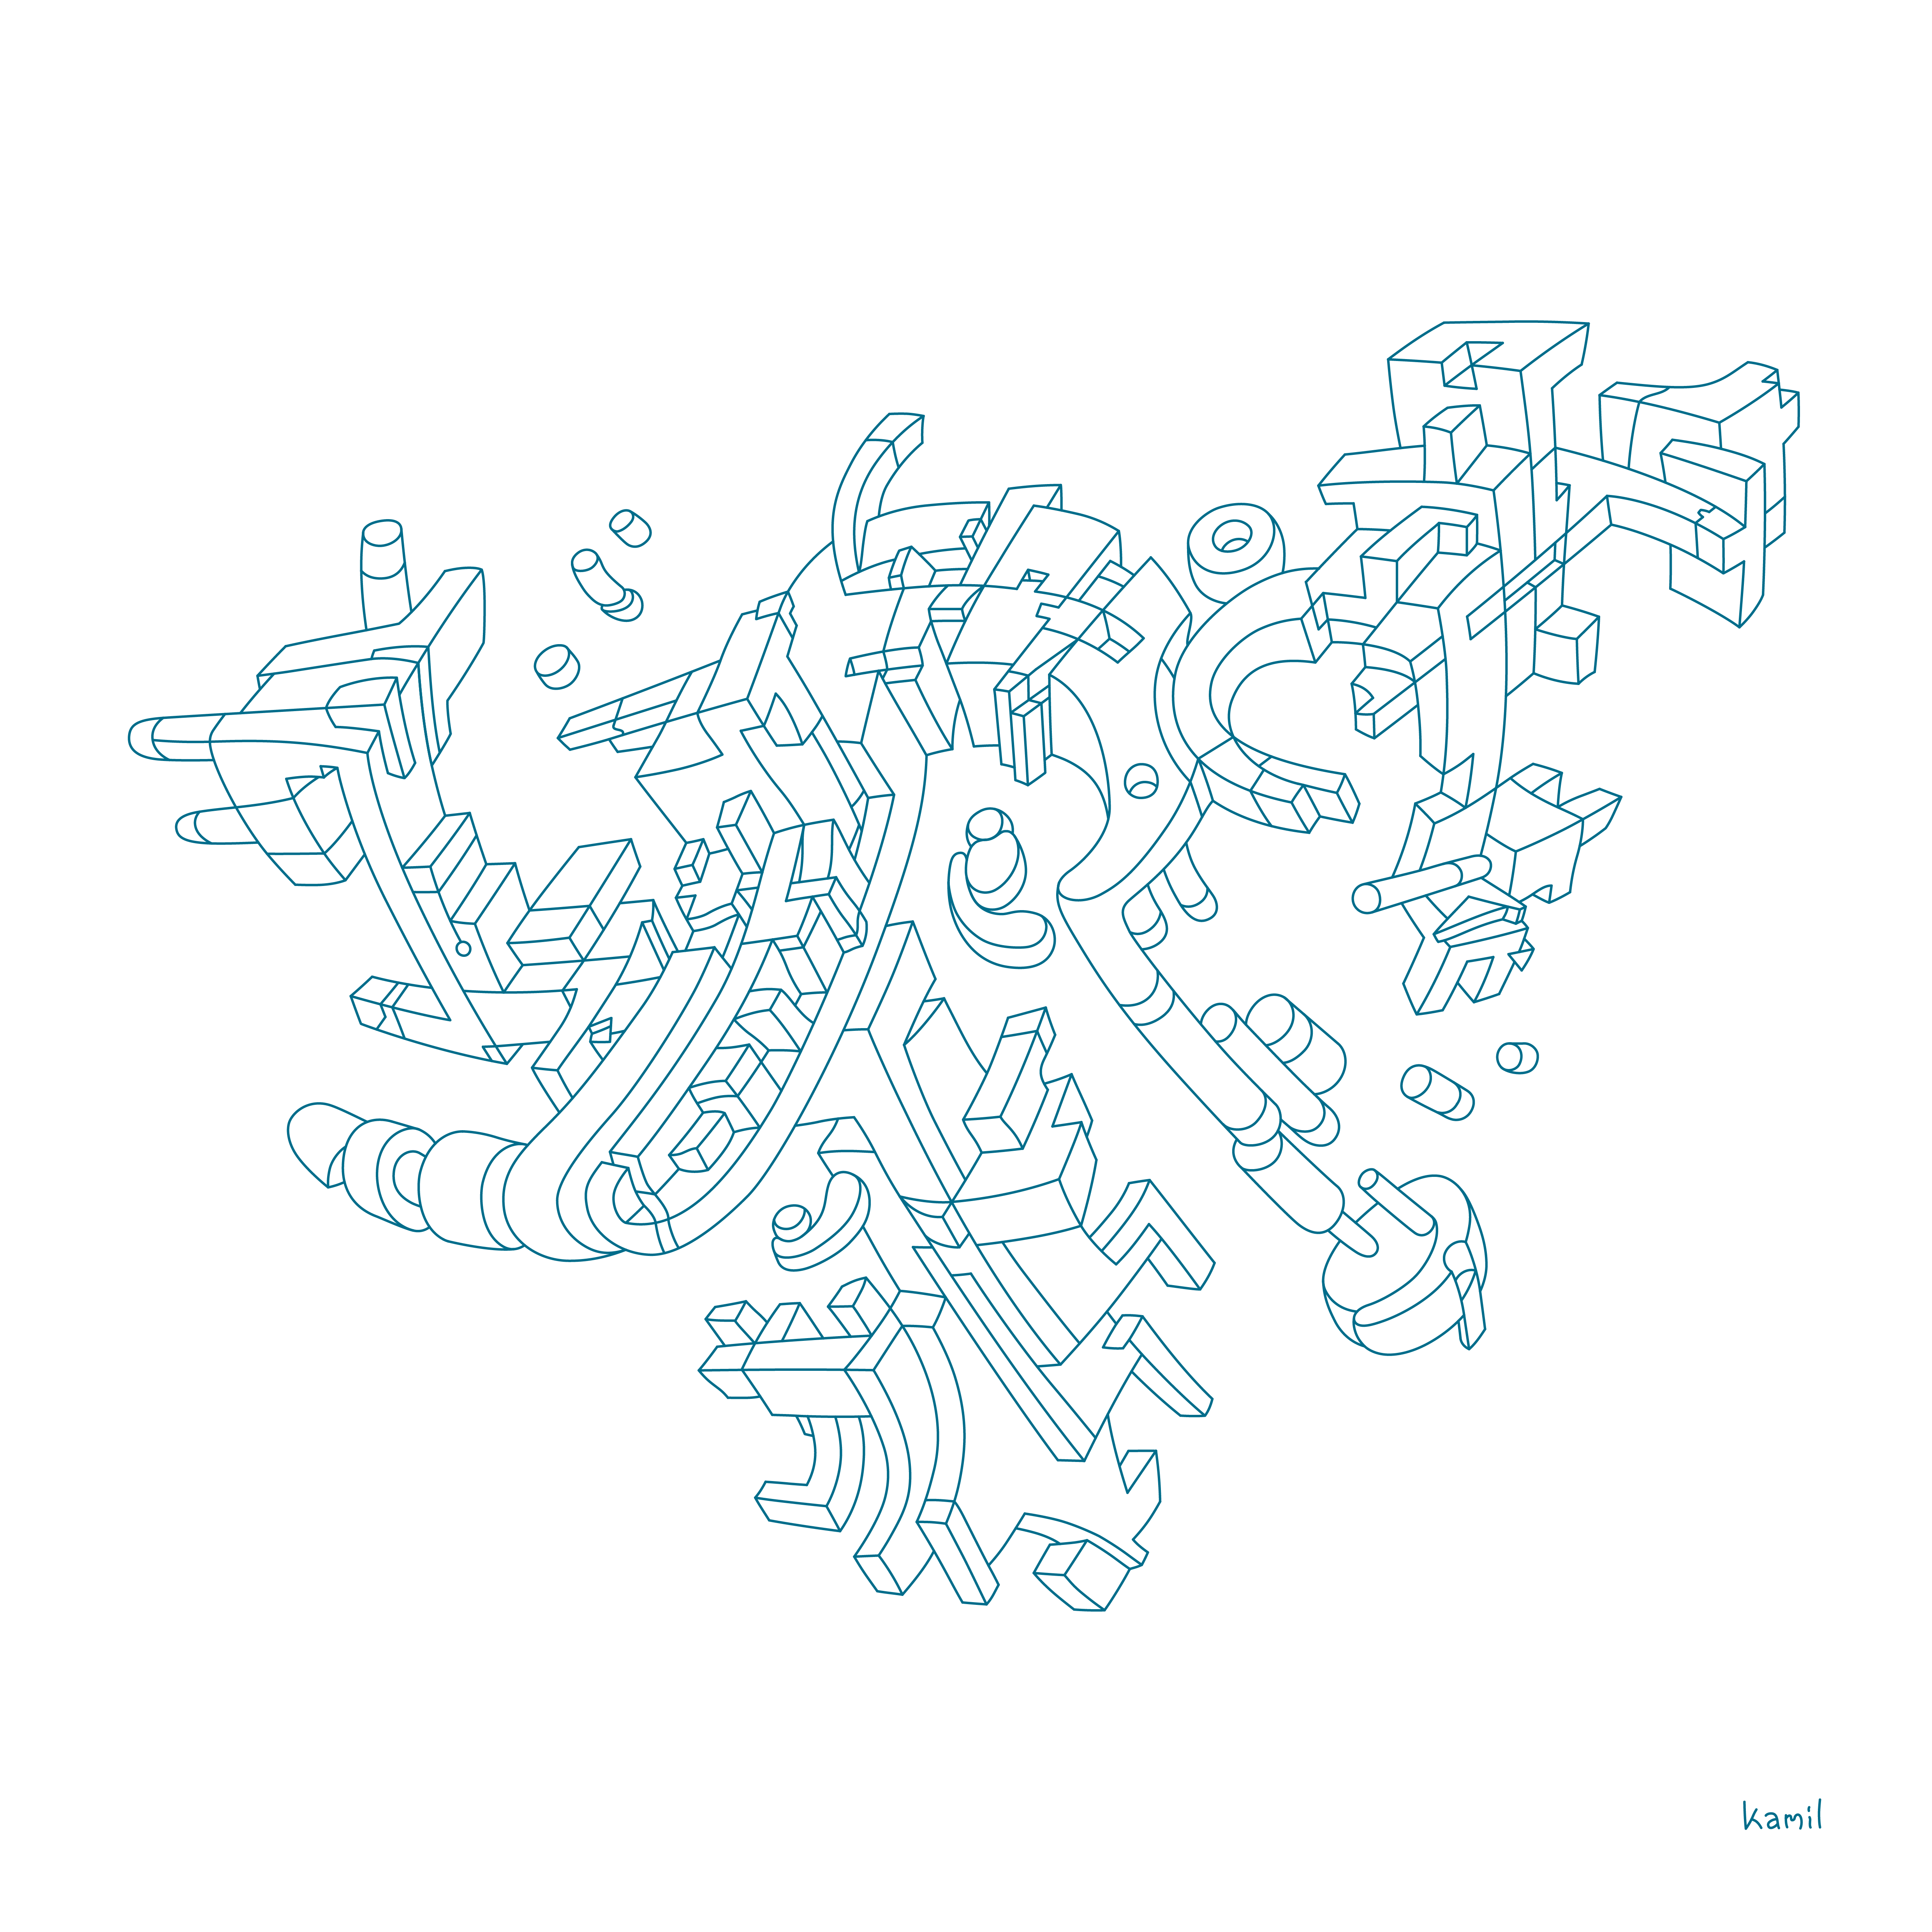 Illustration – Lines and Shapes in Relation No. 1 – Abstract Dynamic Study (outline version)